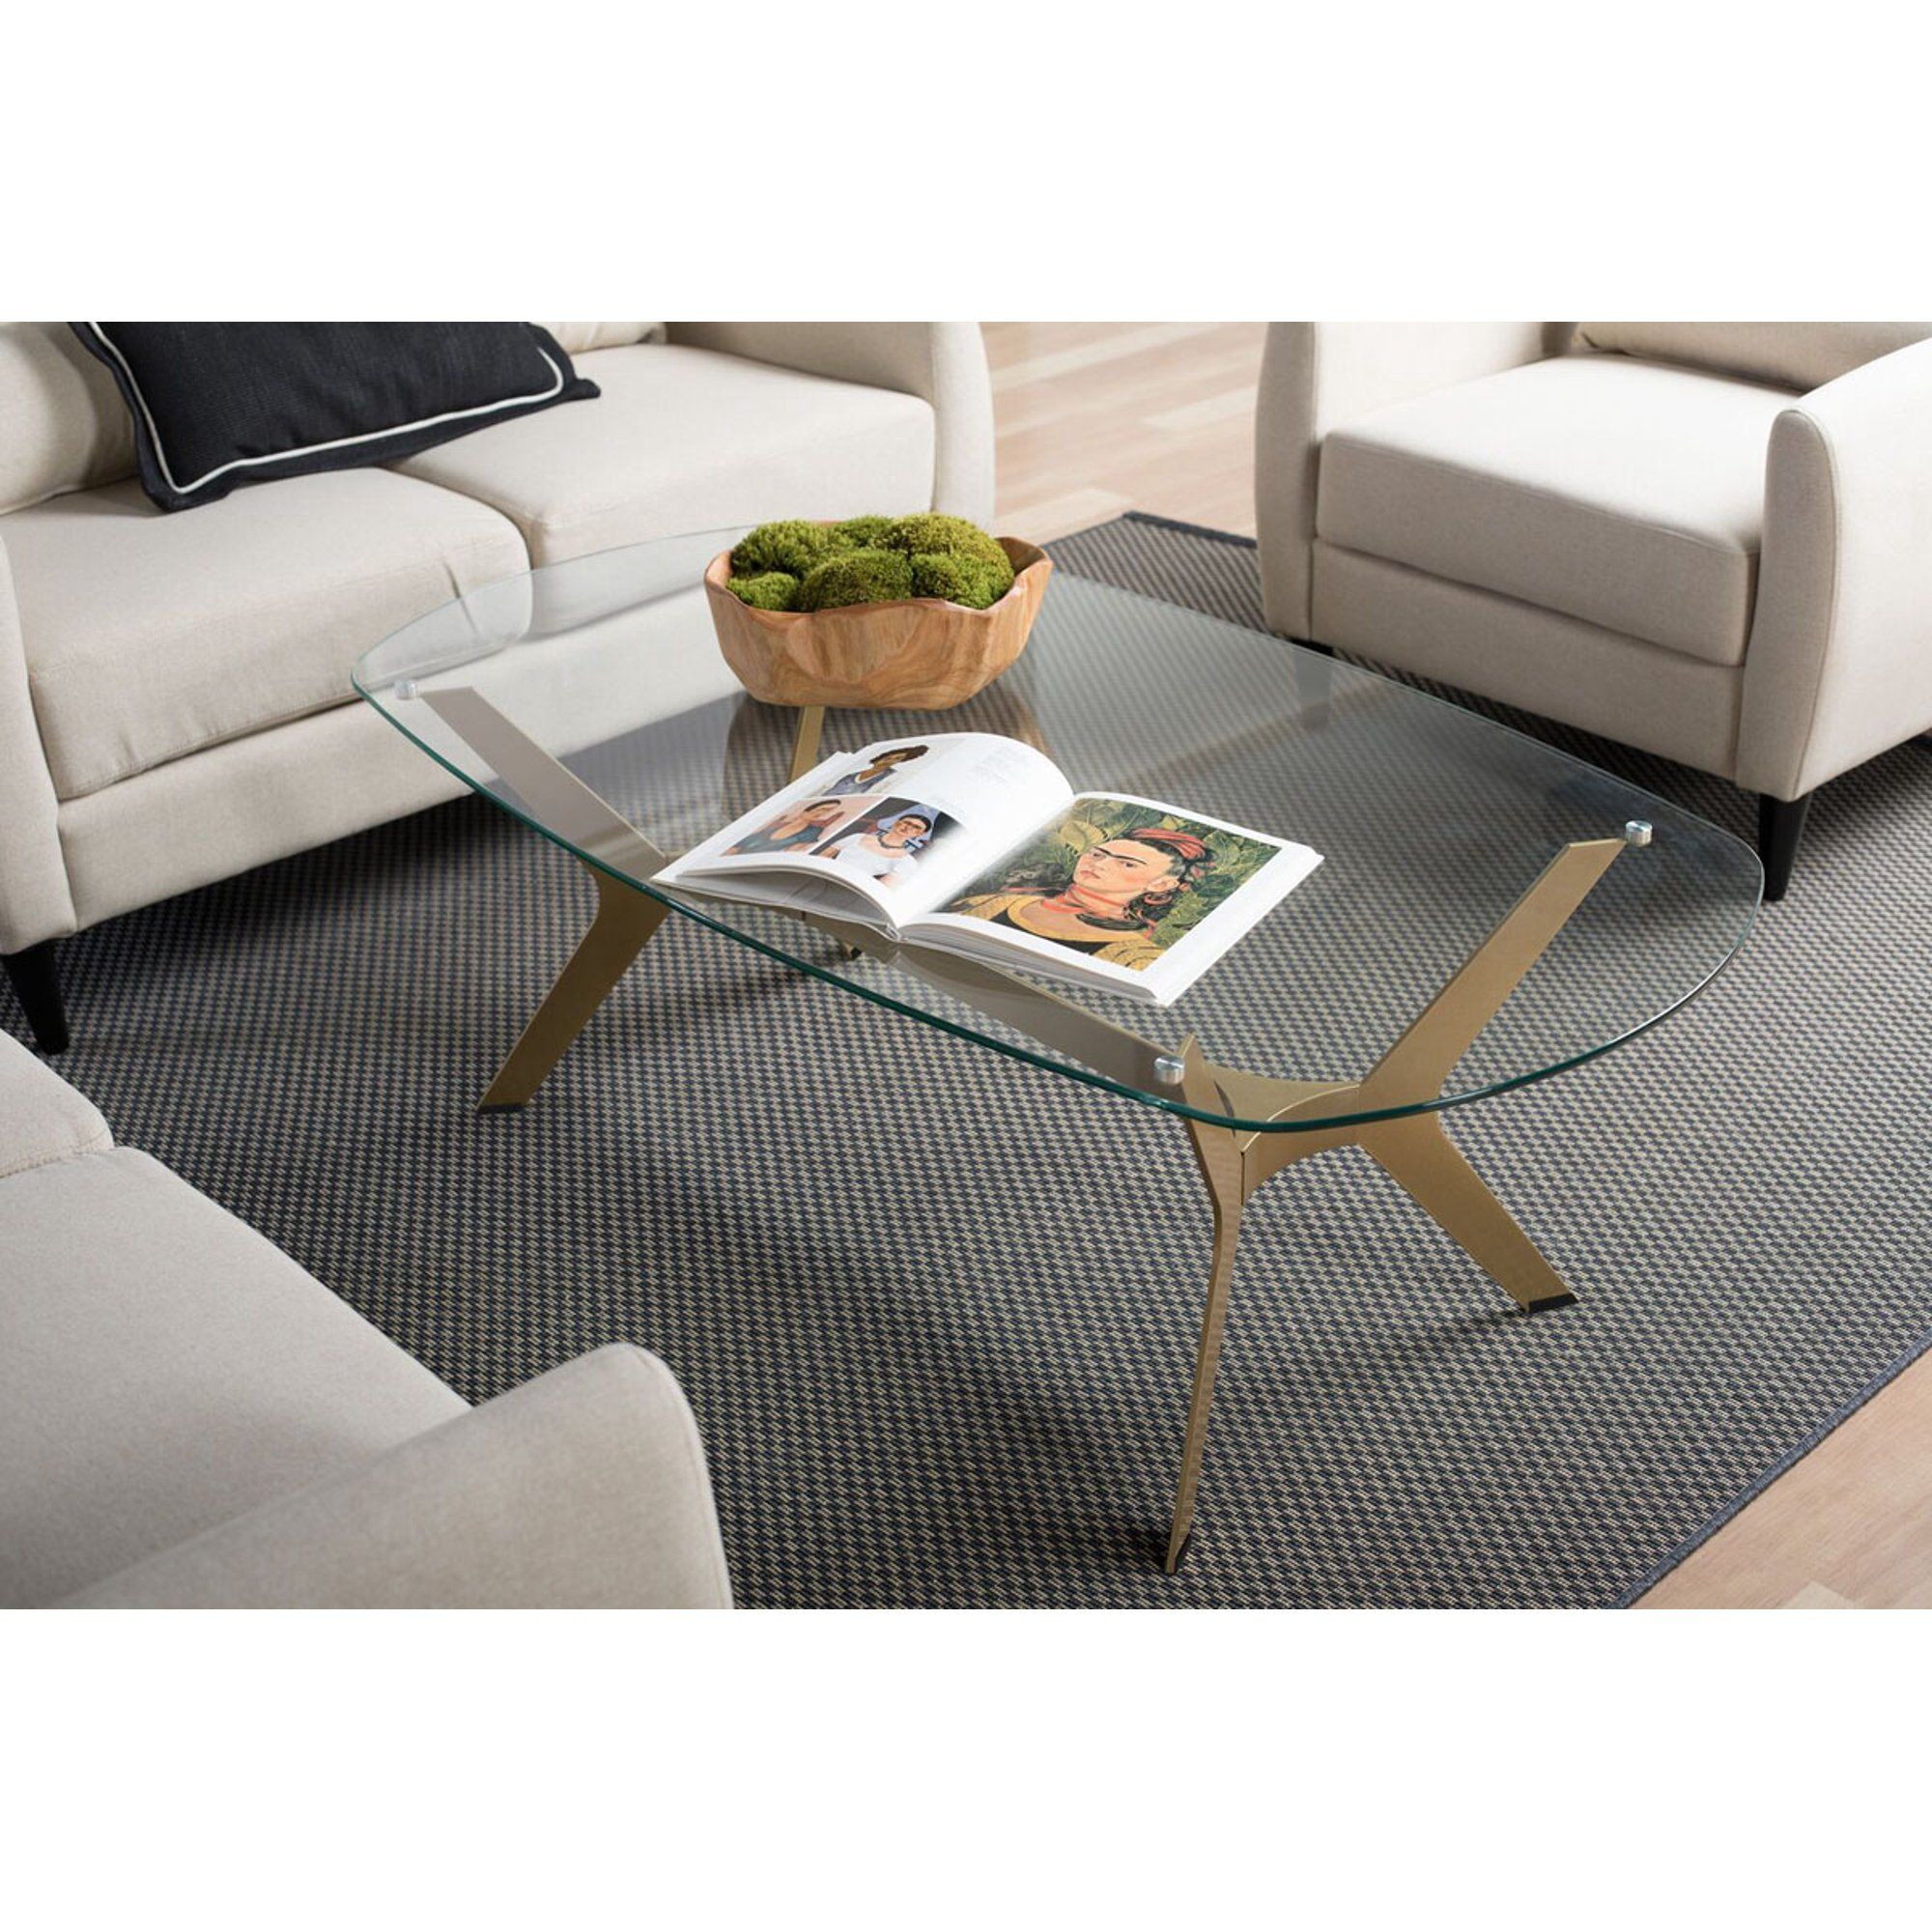 Studio Designs Home Archtech Mid Century Modern Coffee Table With Glass Top Walmart Com Mid Century Modern Coffee Table Coffee Table Modern Glass Coffee Table [ 2000 x 2000 Pixel ]